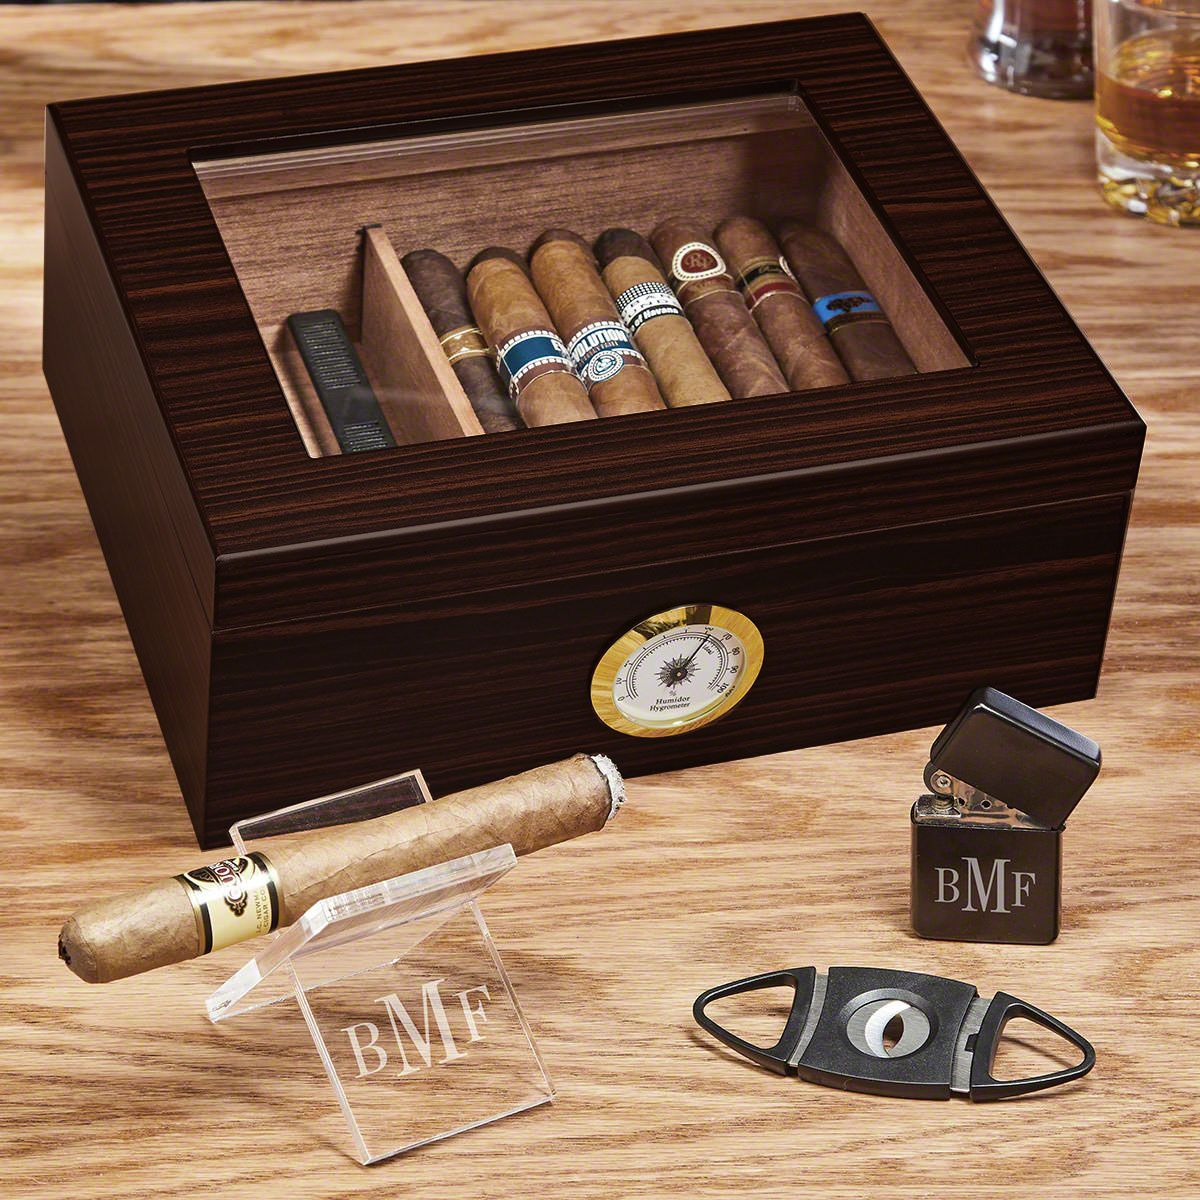 Classic Monogram Personalized Gifts for Cigar Lovers with Humidor